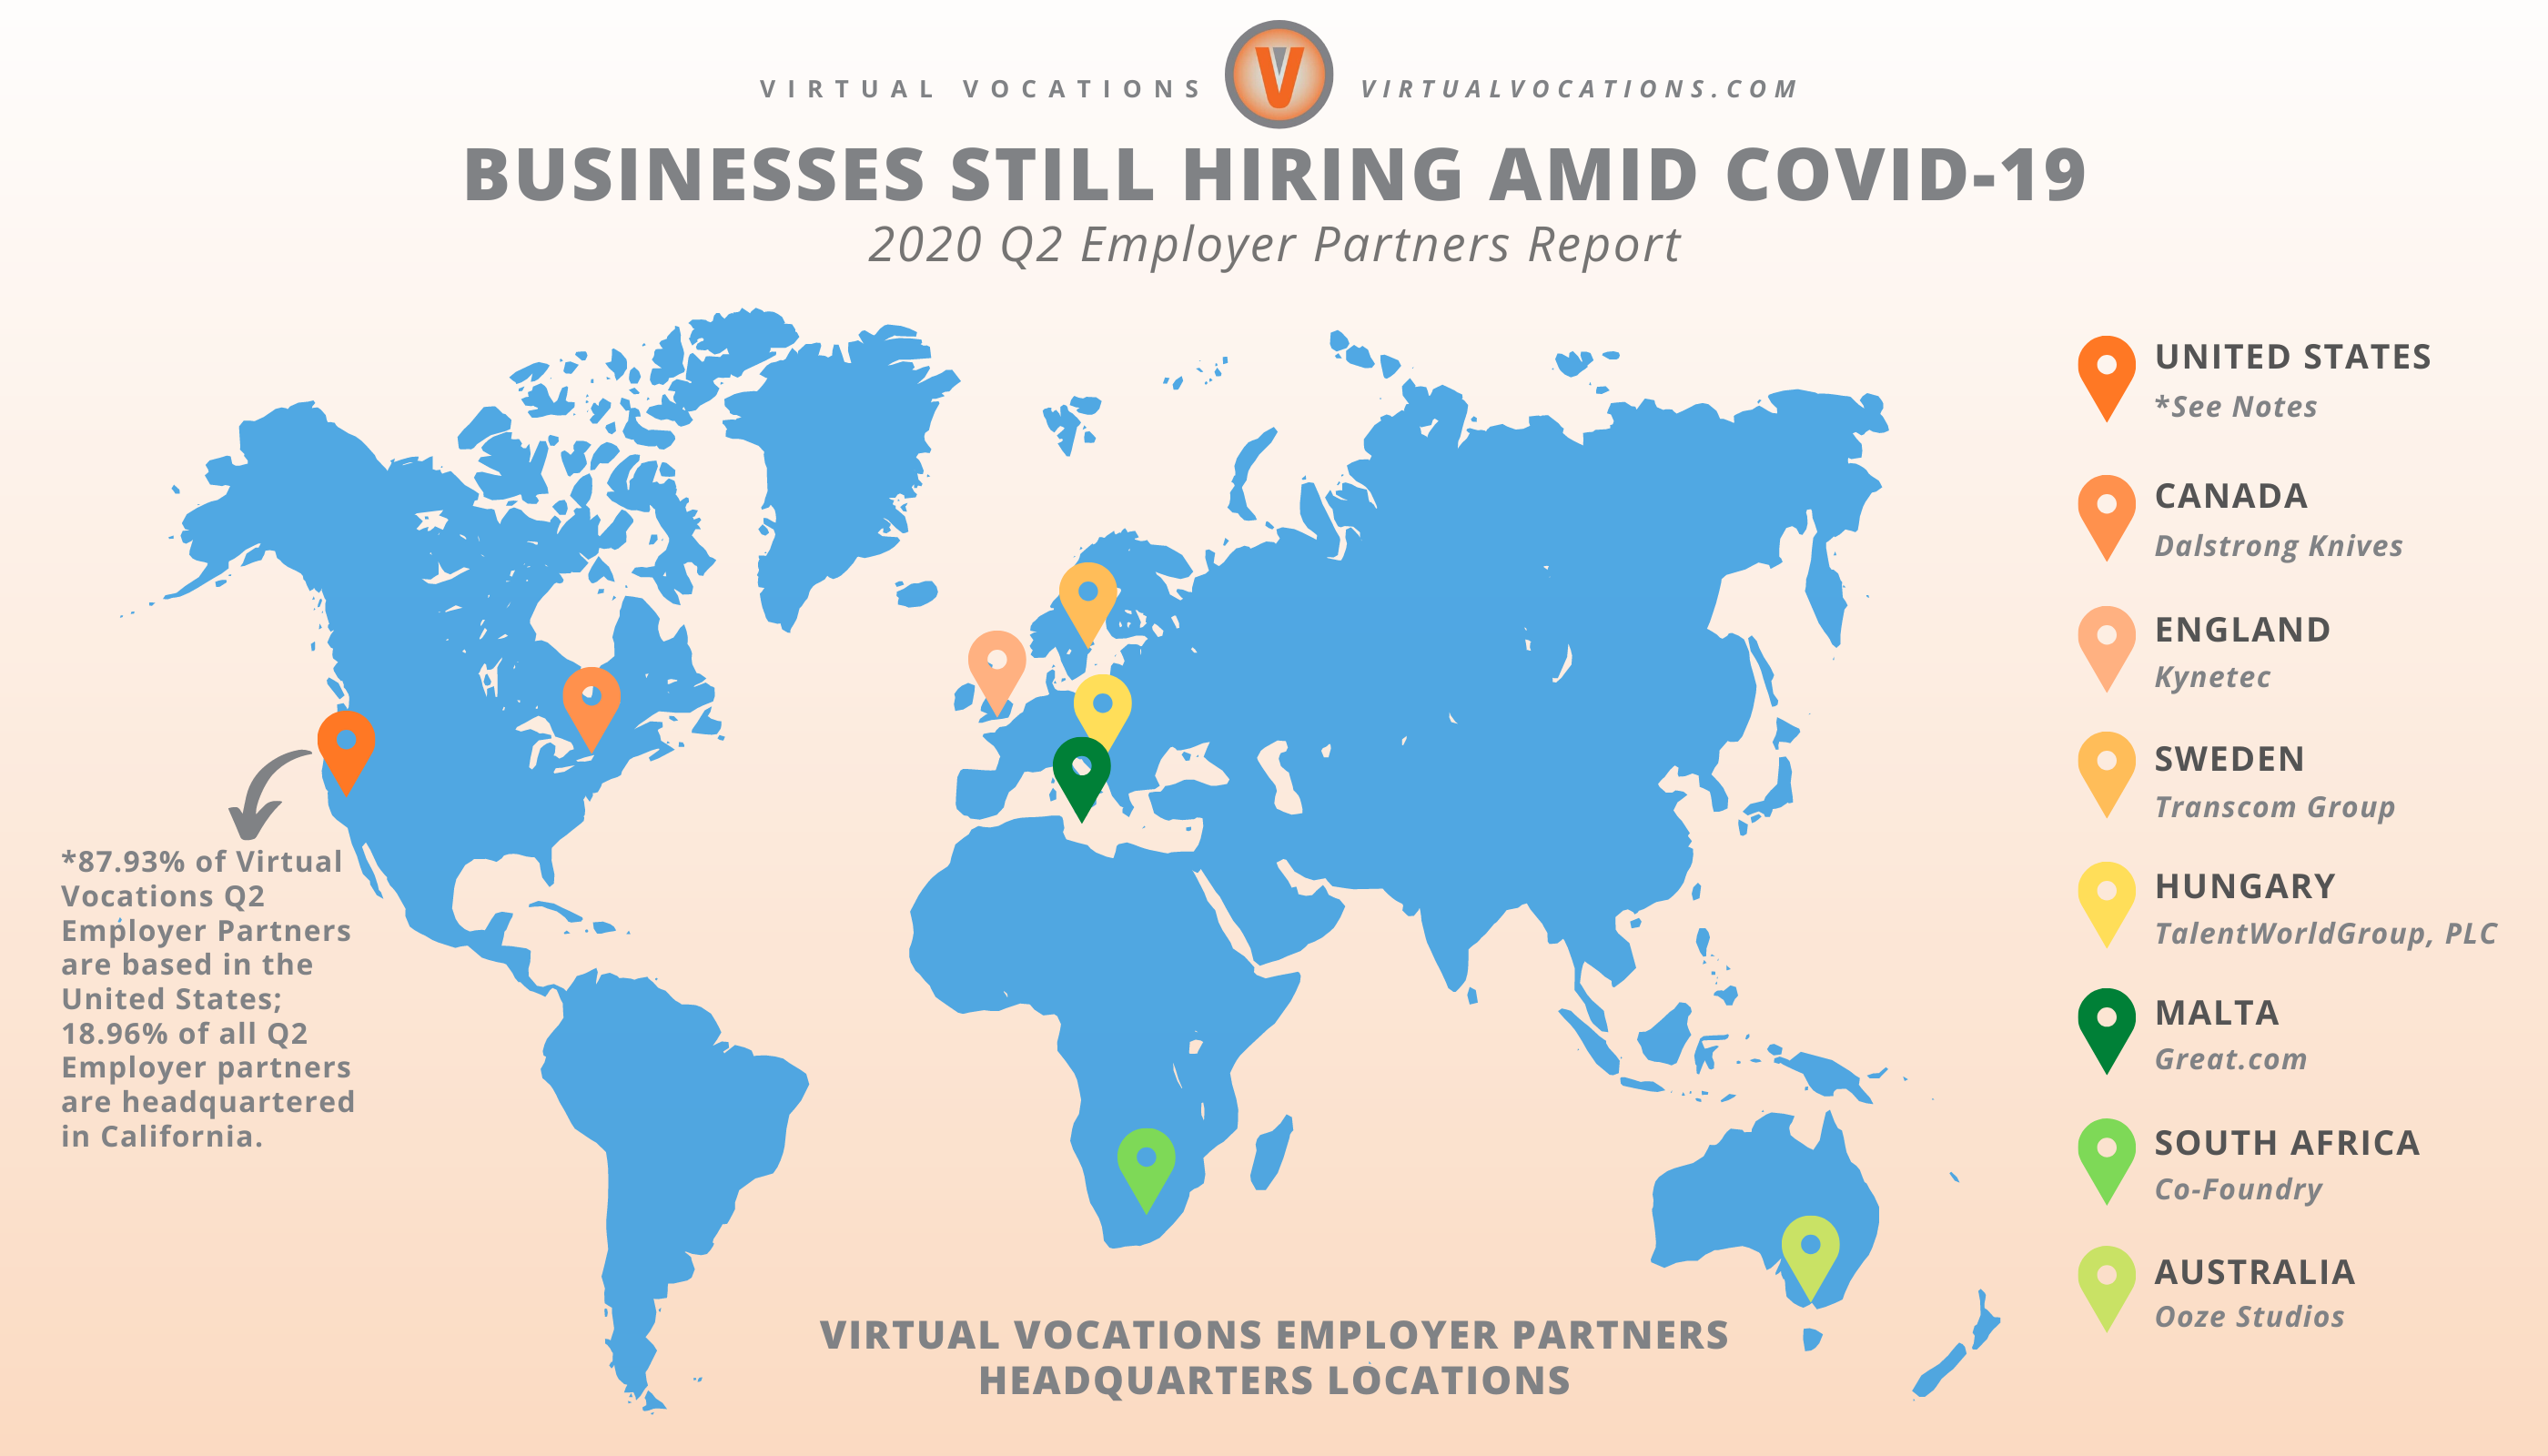 Virtual Vocations Businesses Still Hiring Amid COVID-19 - Q2 Employer Partners Report - Company Headquarters Locations